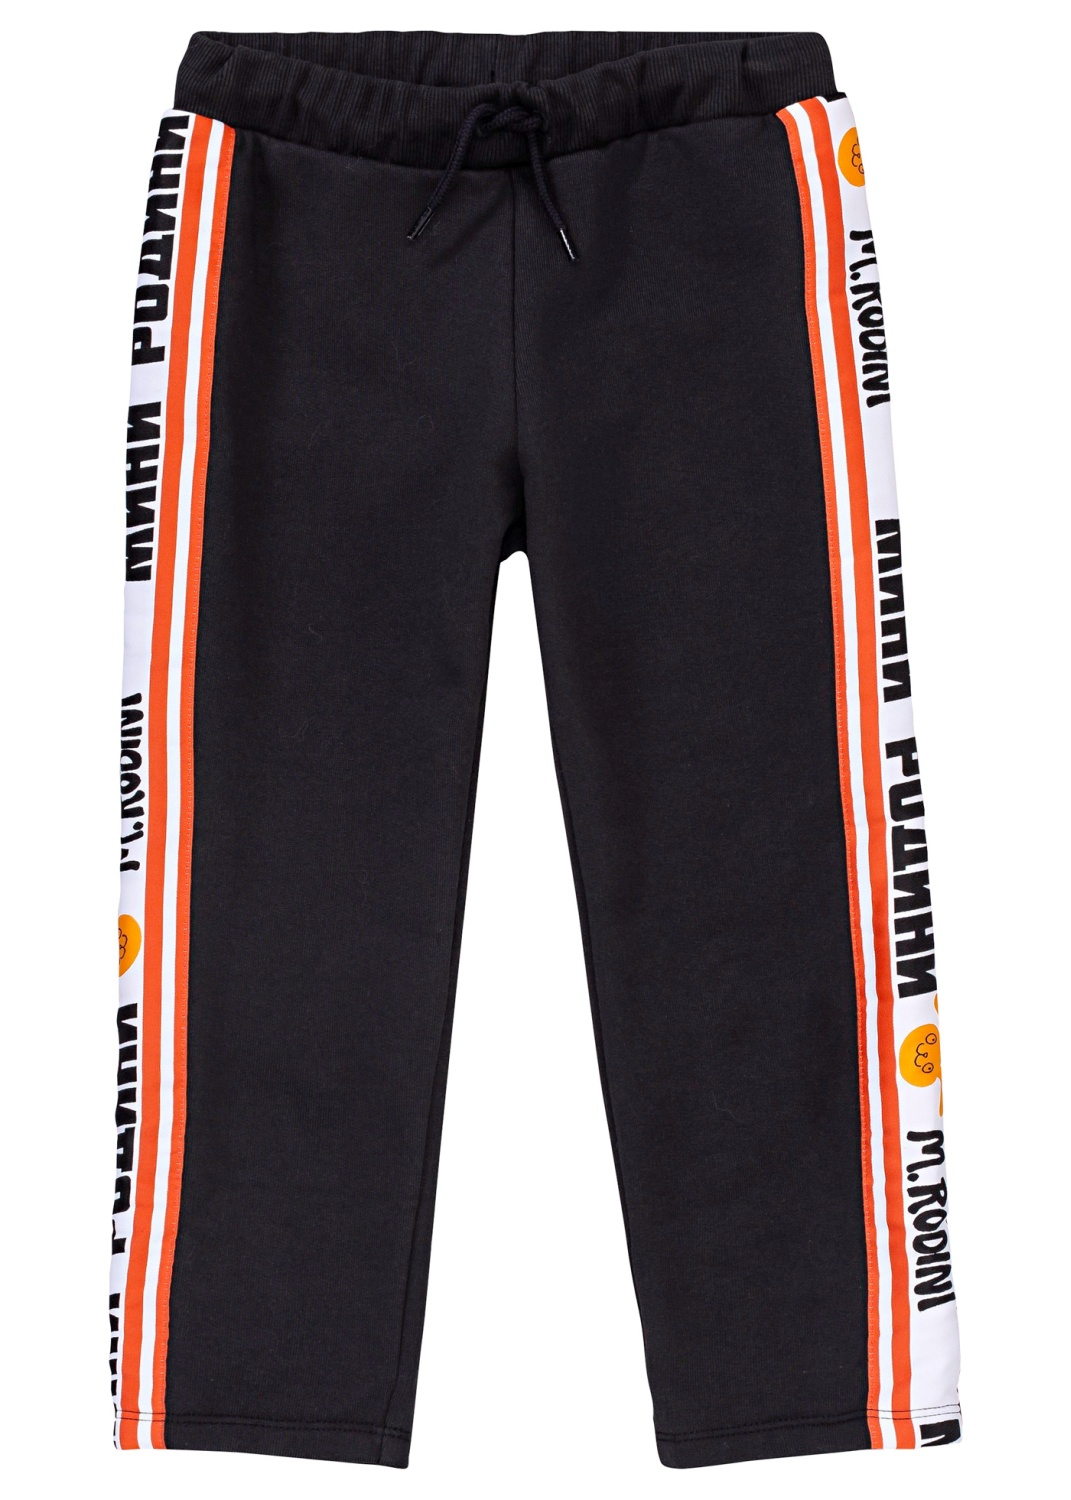 Moscow sweatpants image number 0